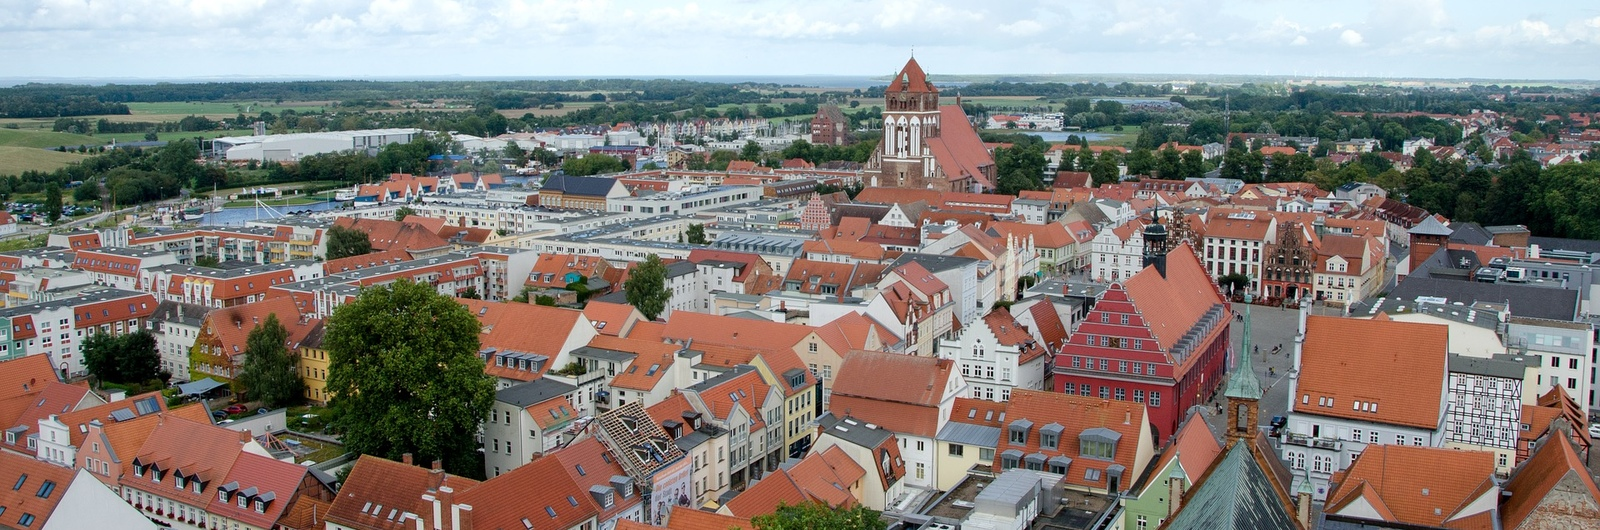 greifswald city header